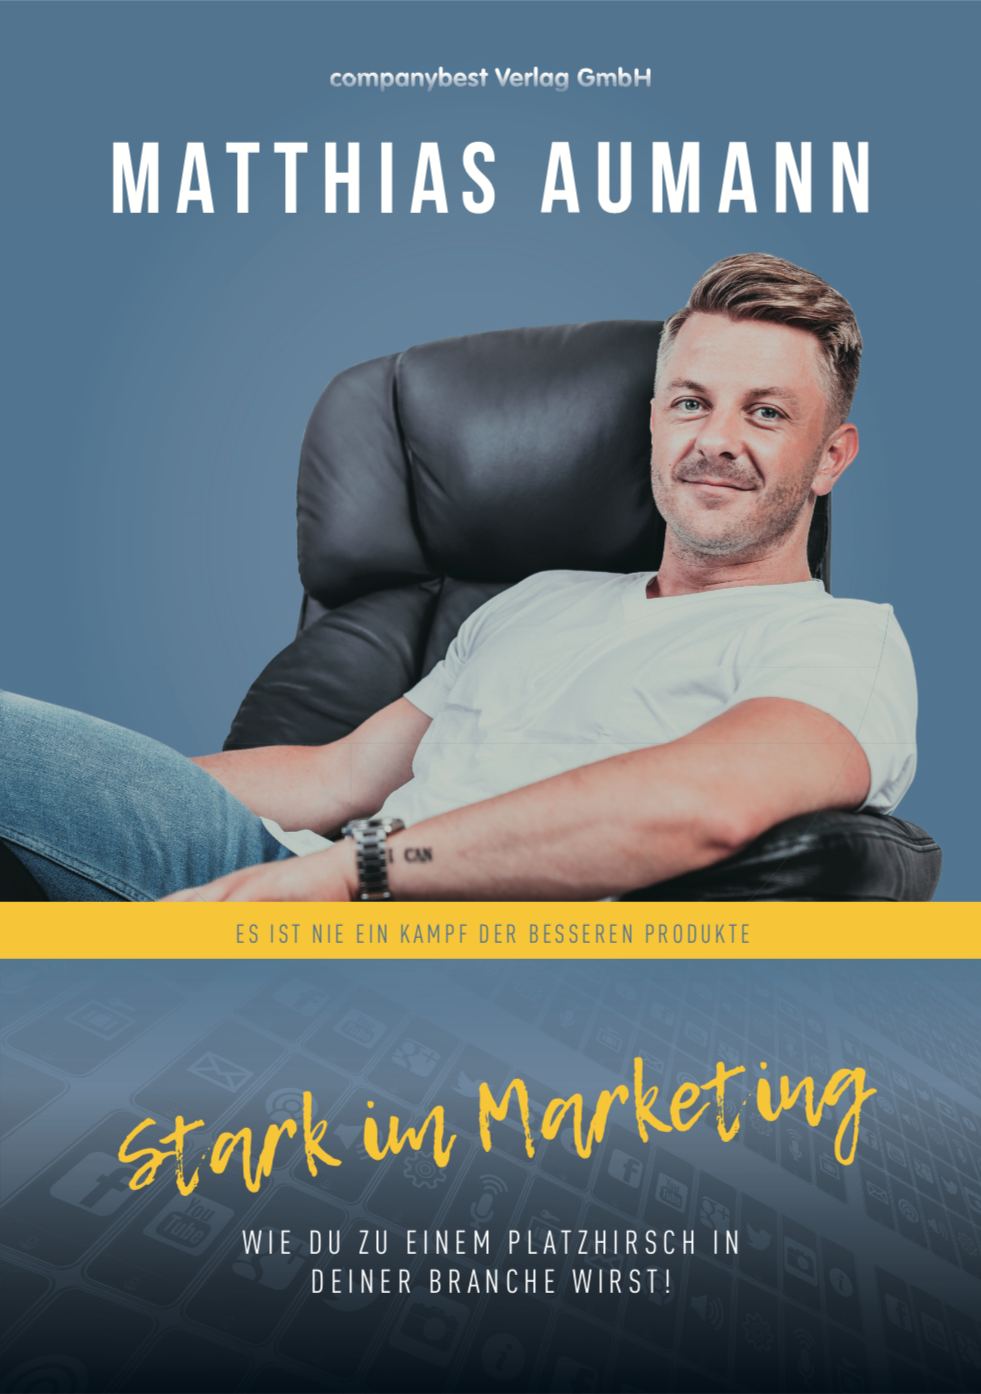 startkimmarketing